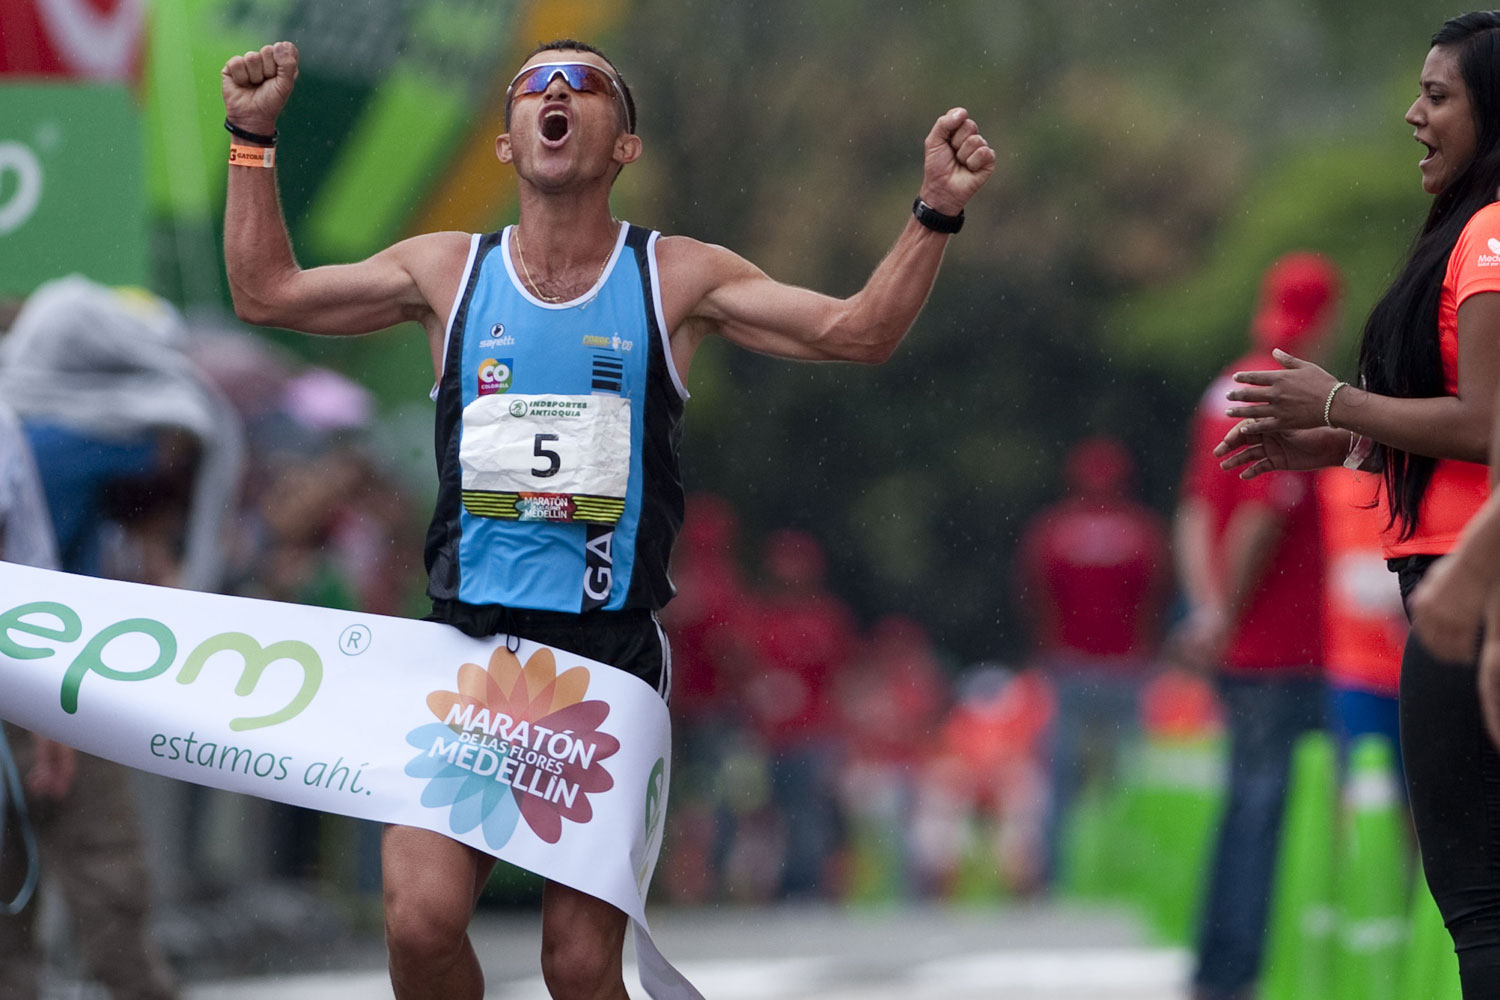 Colombian runner Juan Carlos Cardona crosses the finish line to win Medellin's Flowers Marathon in 2013.